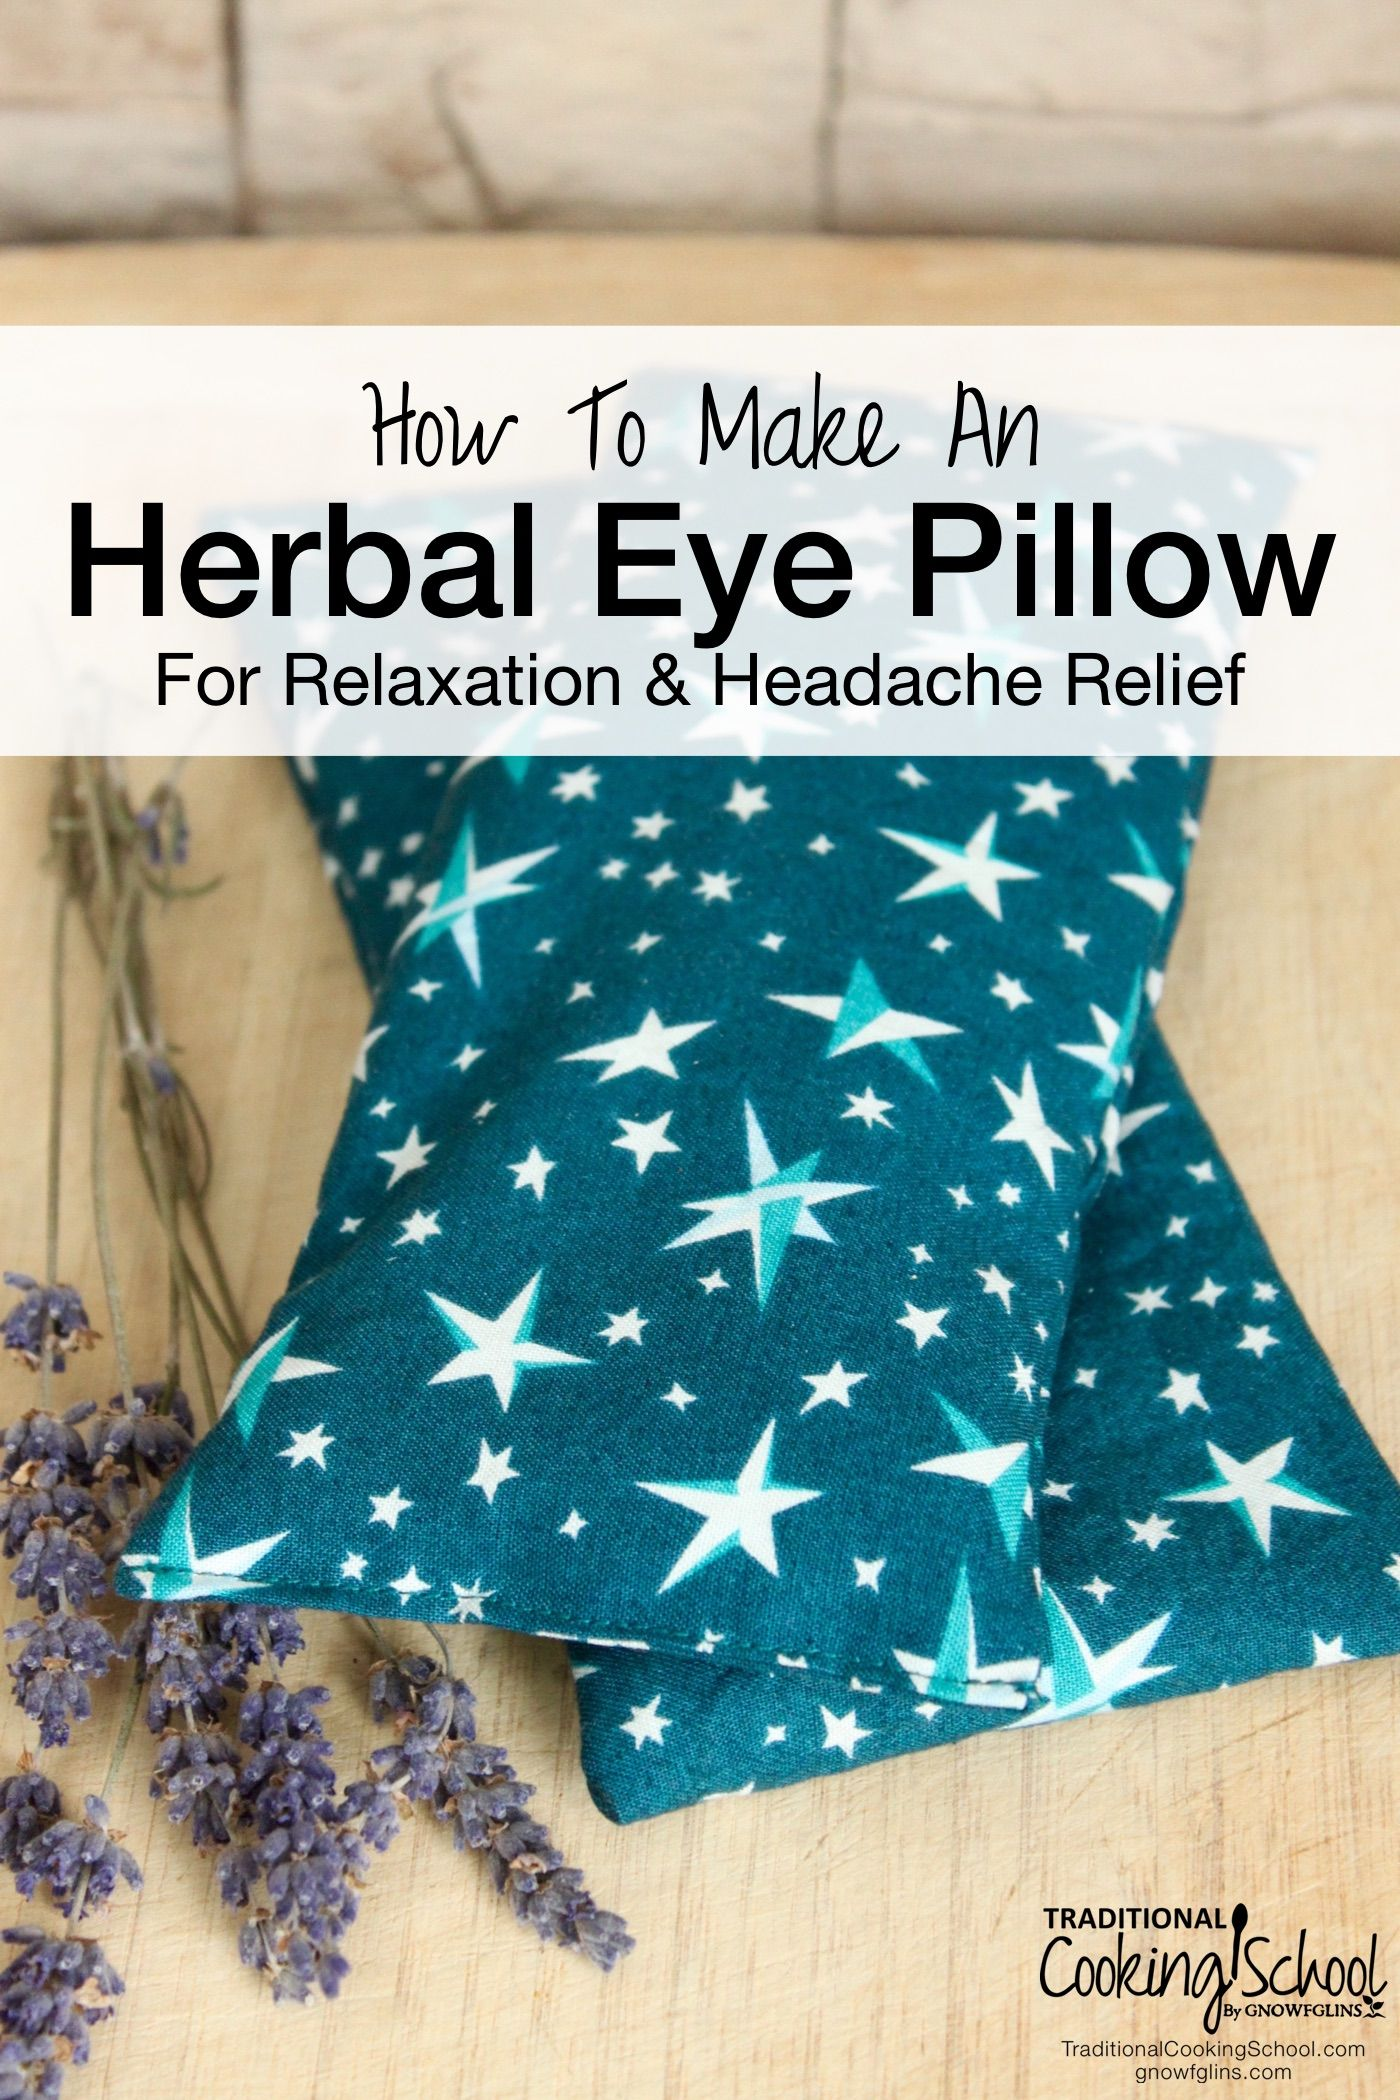 Herbal Scented Animal Eye Pillows : How To Make An Herbal Eye Pillow Recipe Tired eyes and Headache relief